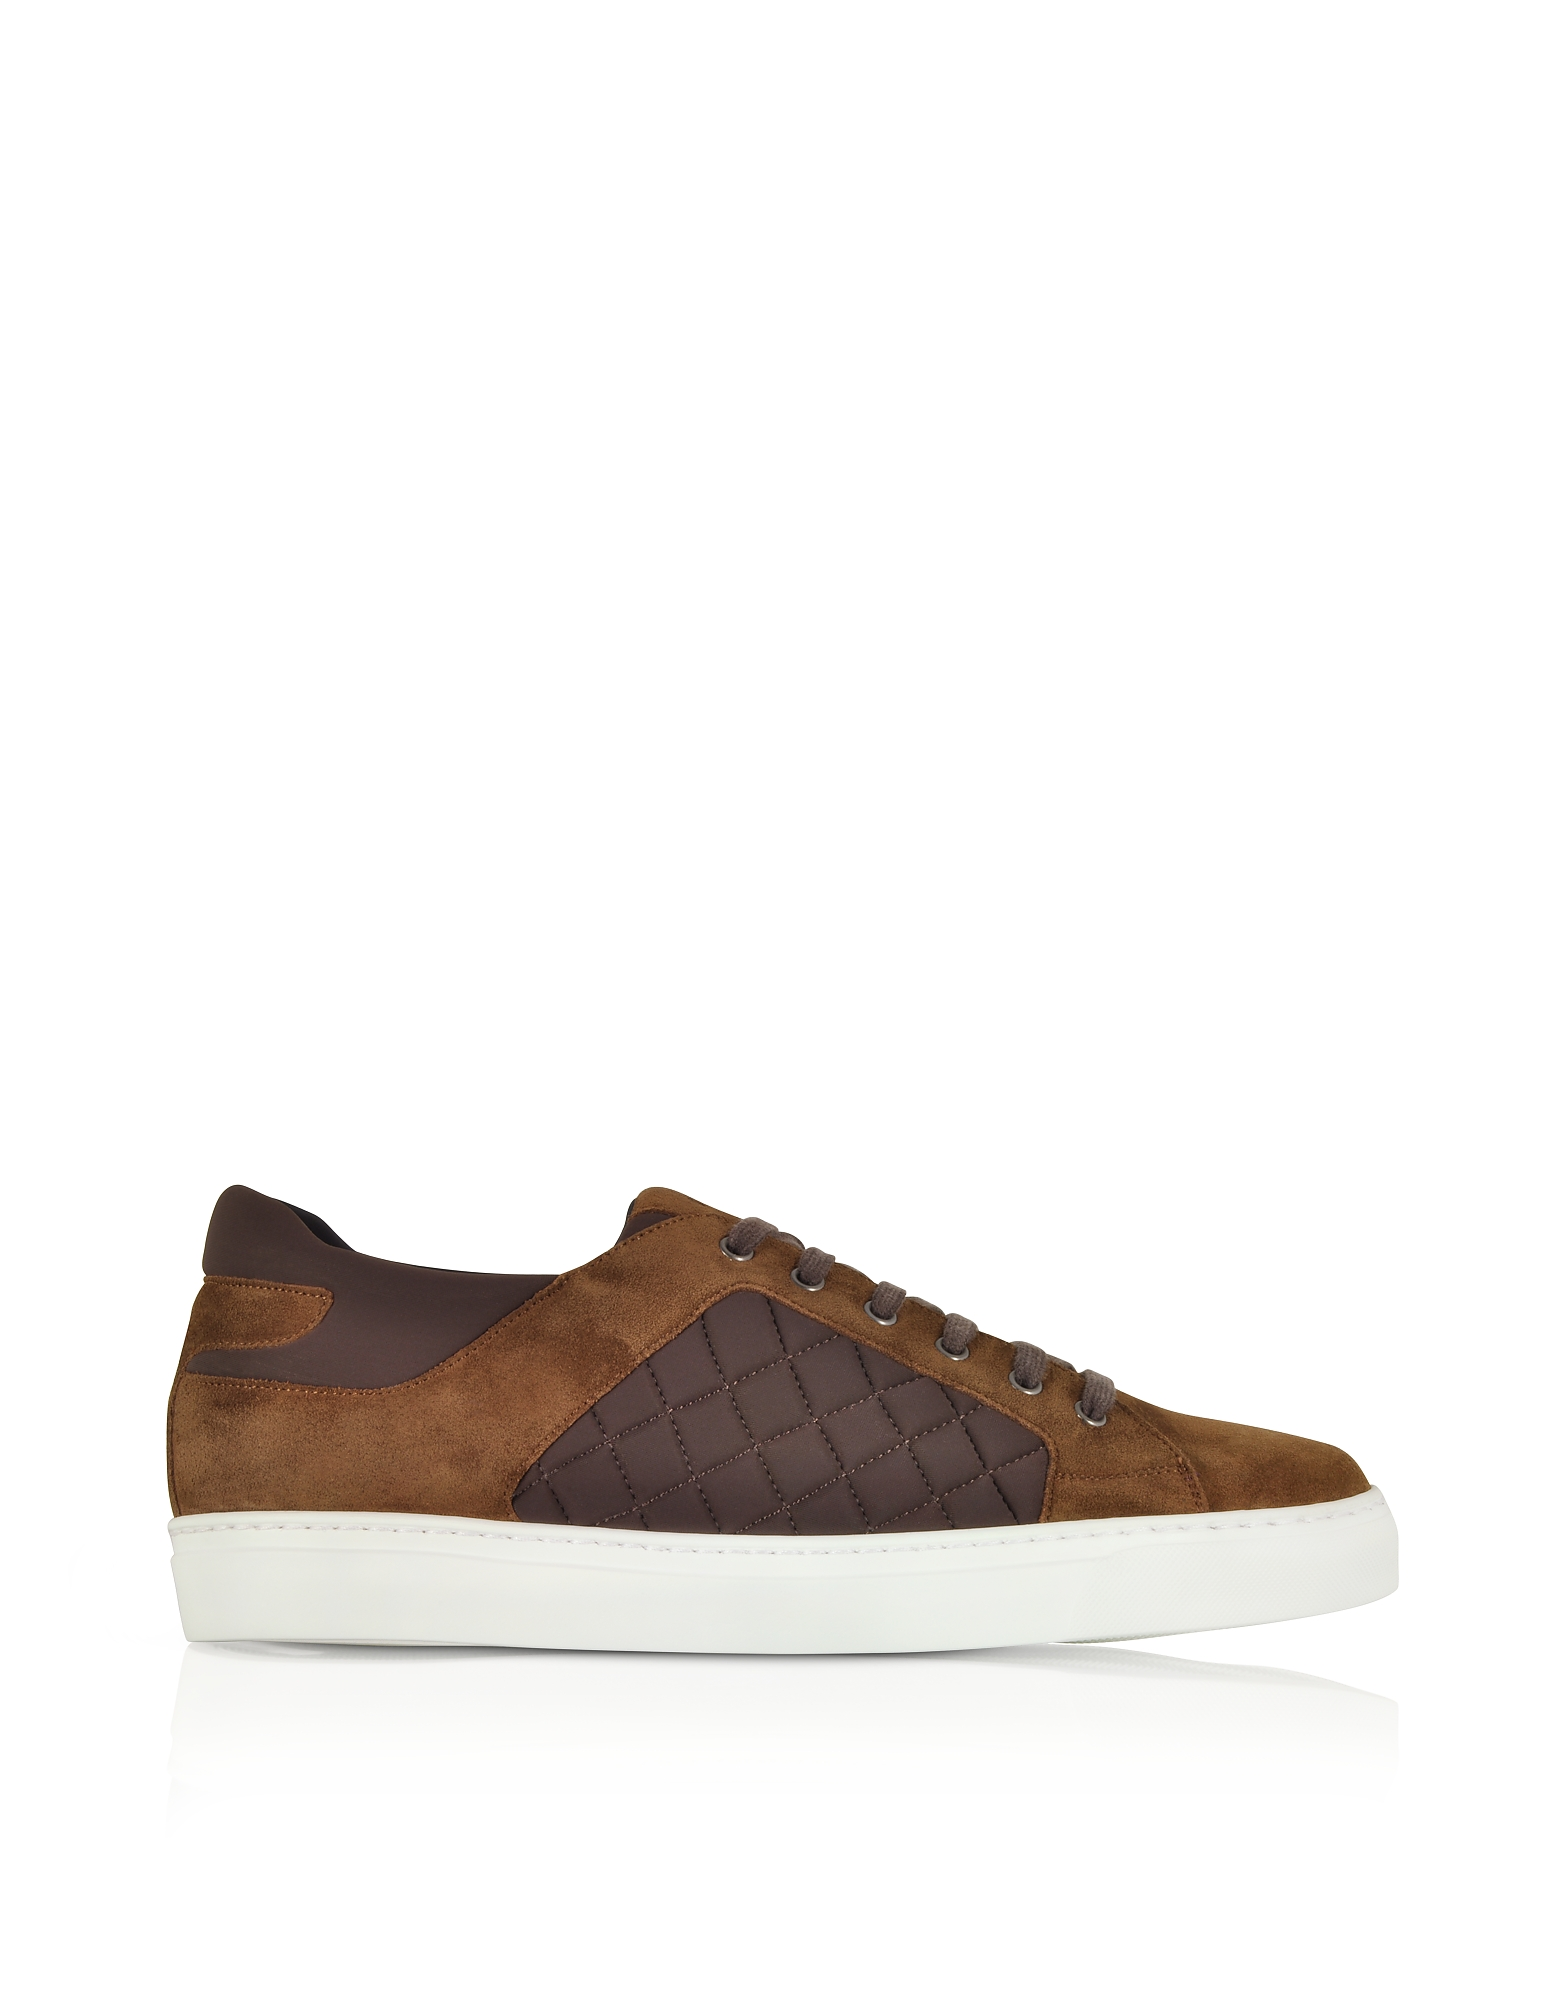 Cigar Brown Suede and Quilted Nylon Men's Sneakers